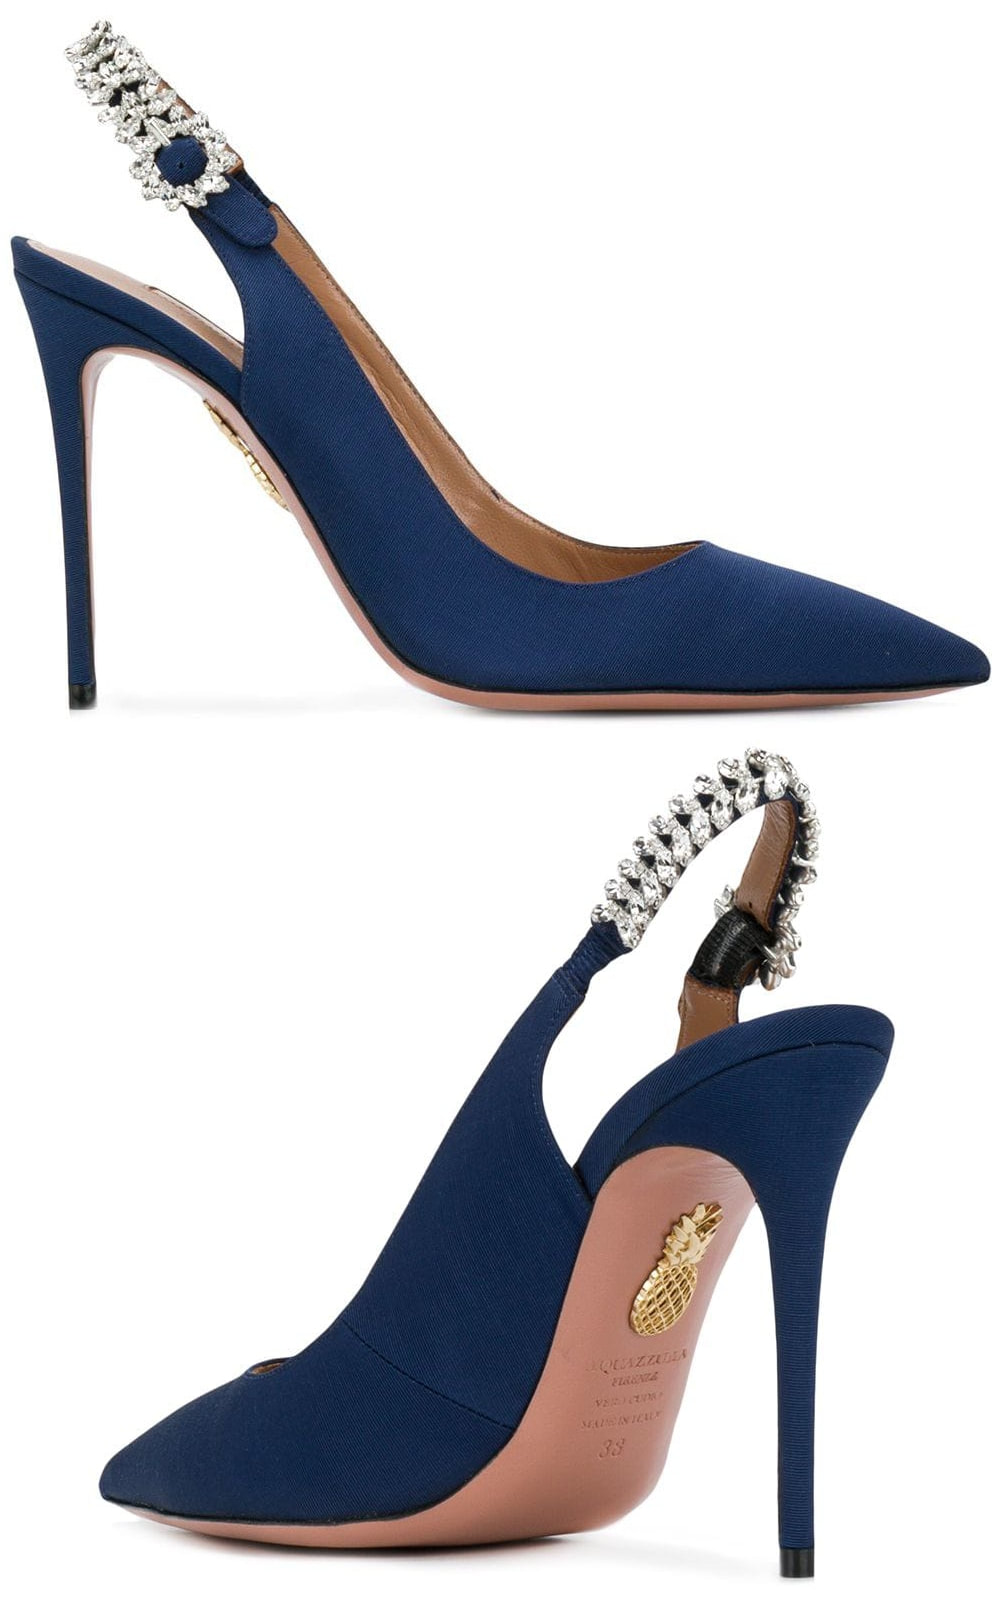 Aquazzura 'Portrait of Lady' sling pumps in admiral blue